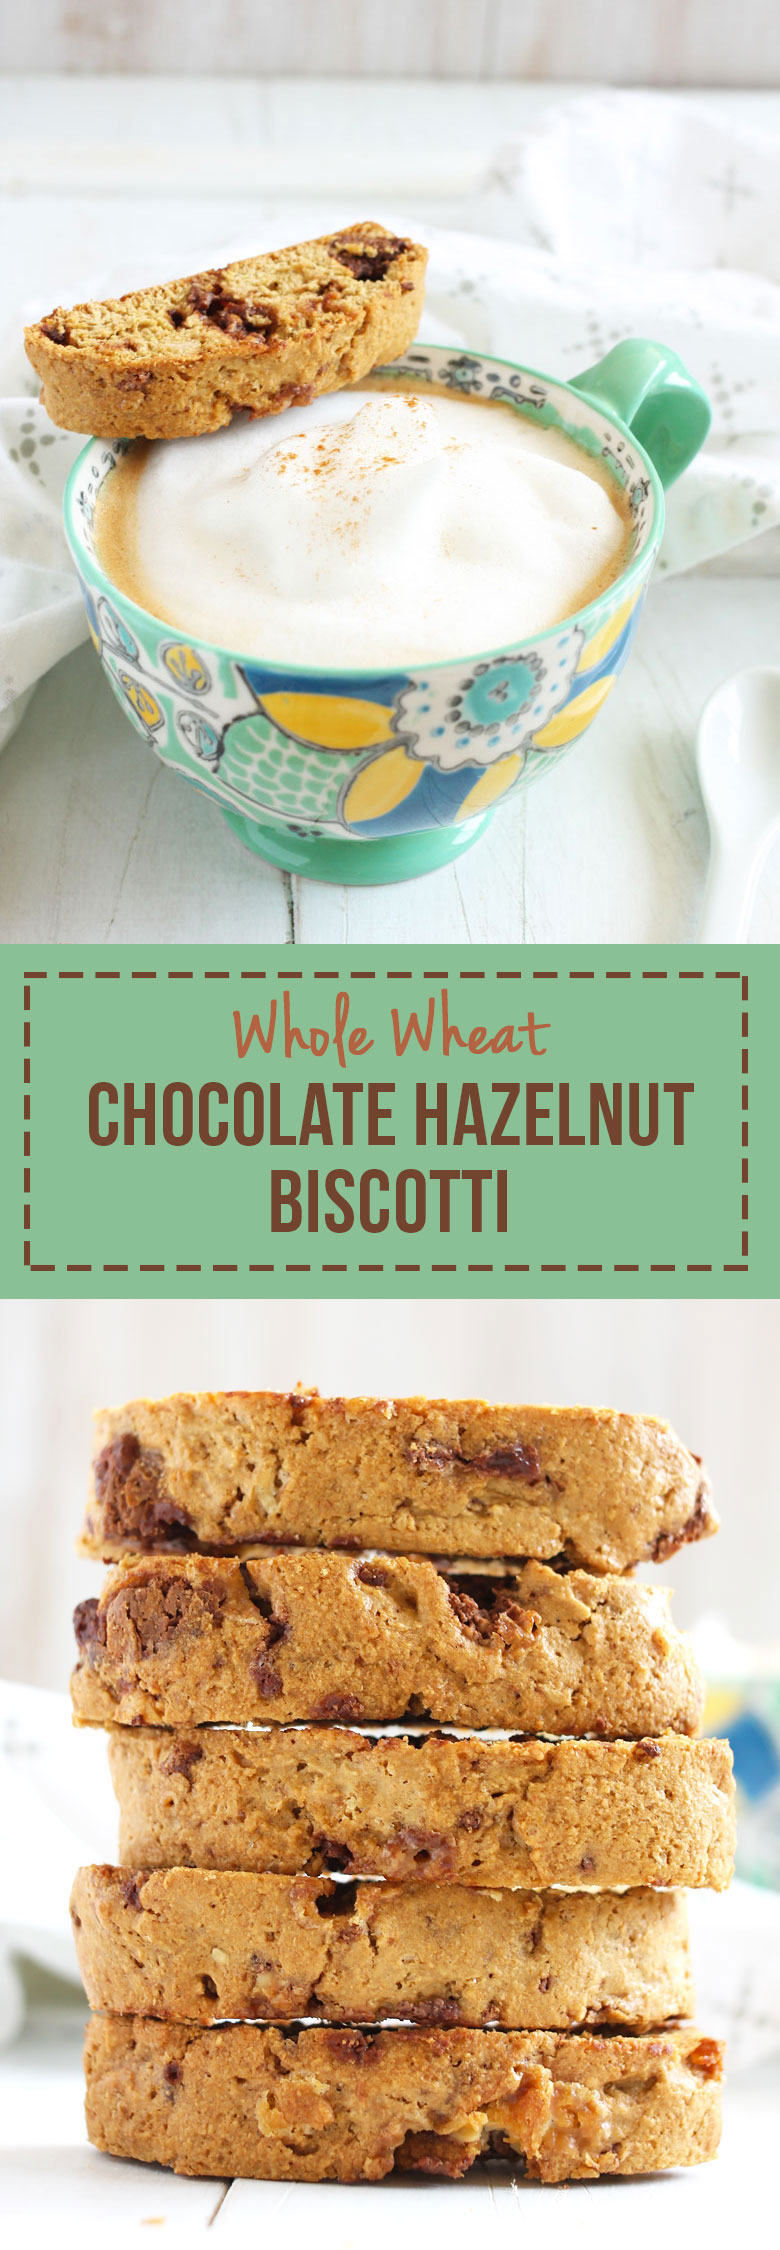 Whole Wheat Chocolate Hazelnut Biscotti // @24carrotlife #sponsored #JoinTheTable #Perugina @colavitaevoo